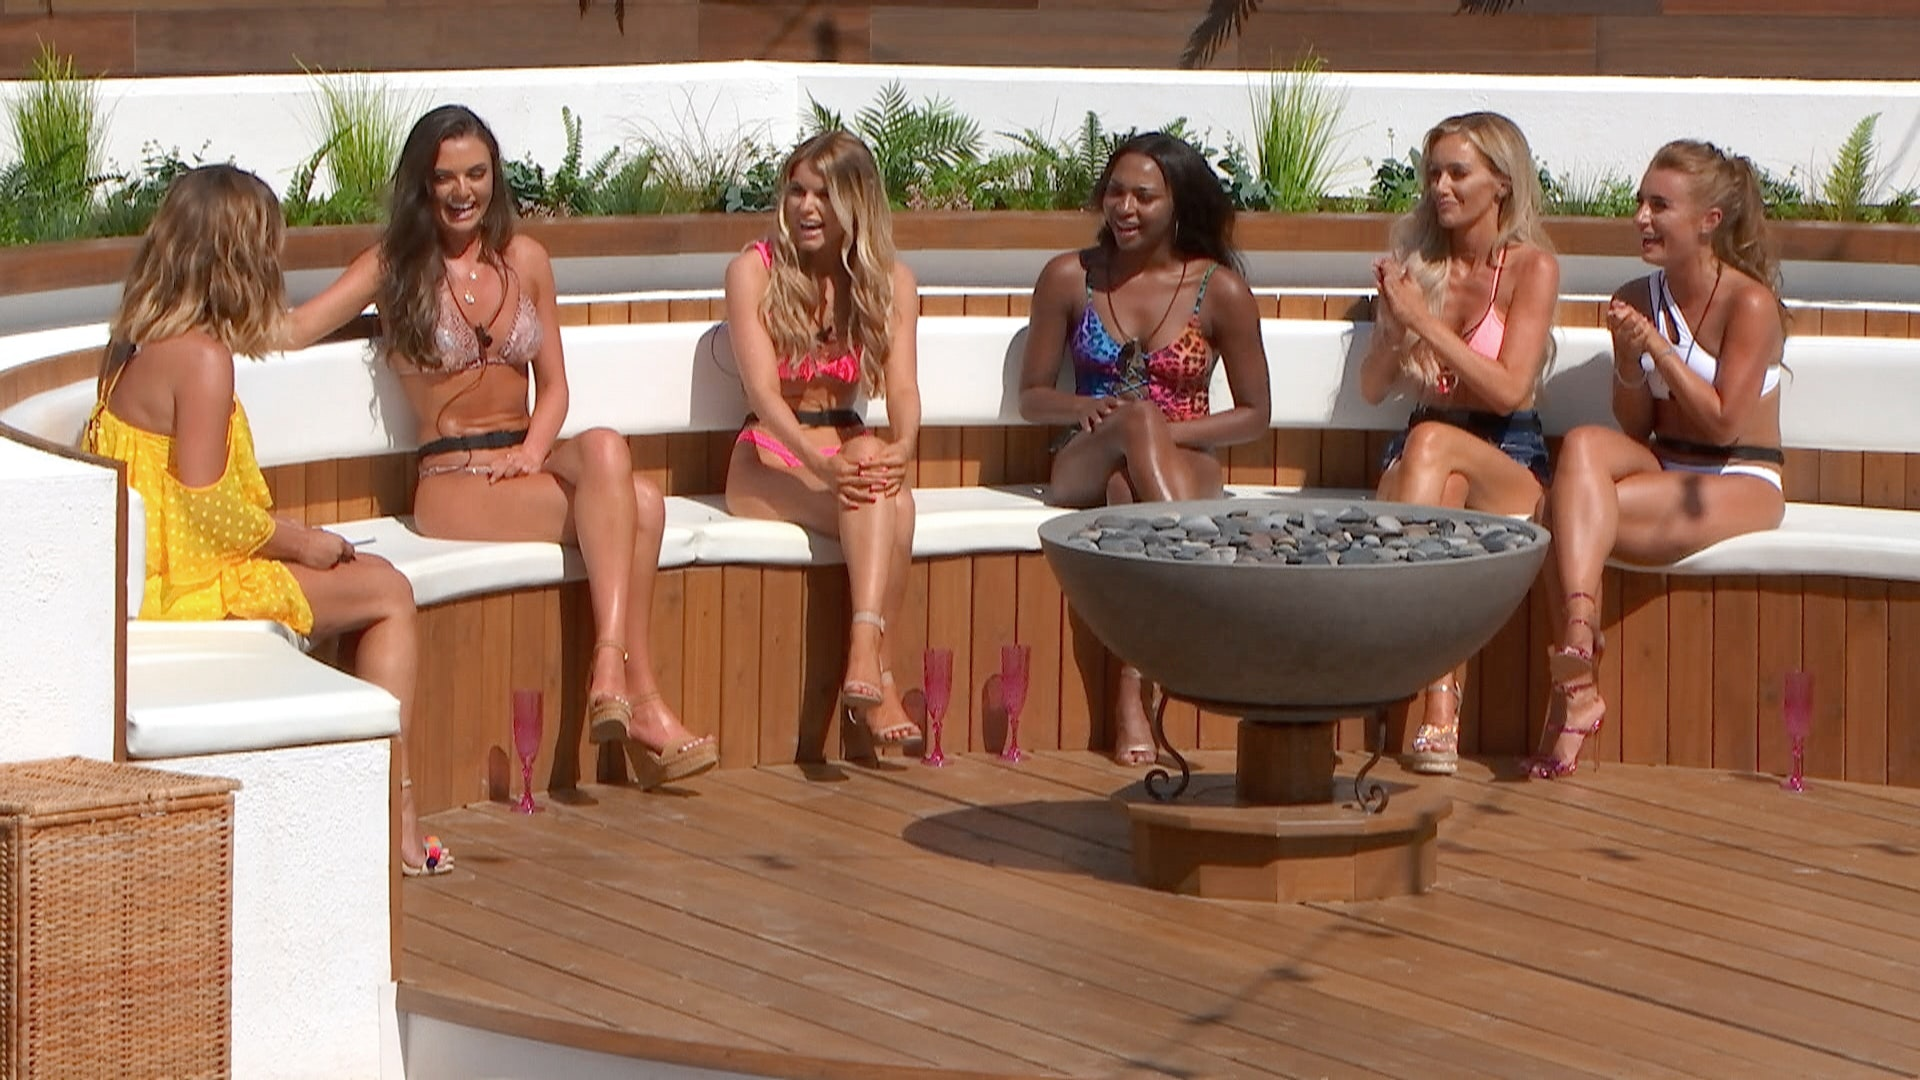 Love Island fans think this proves last night's recoupling was a 'fix'